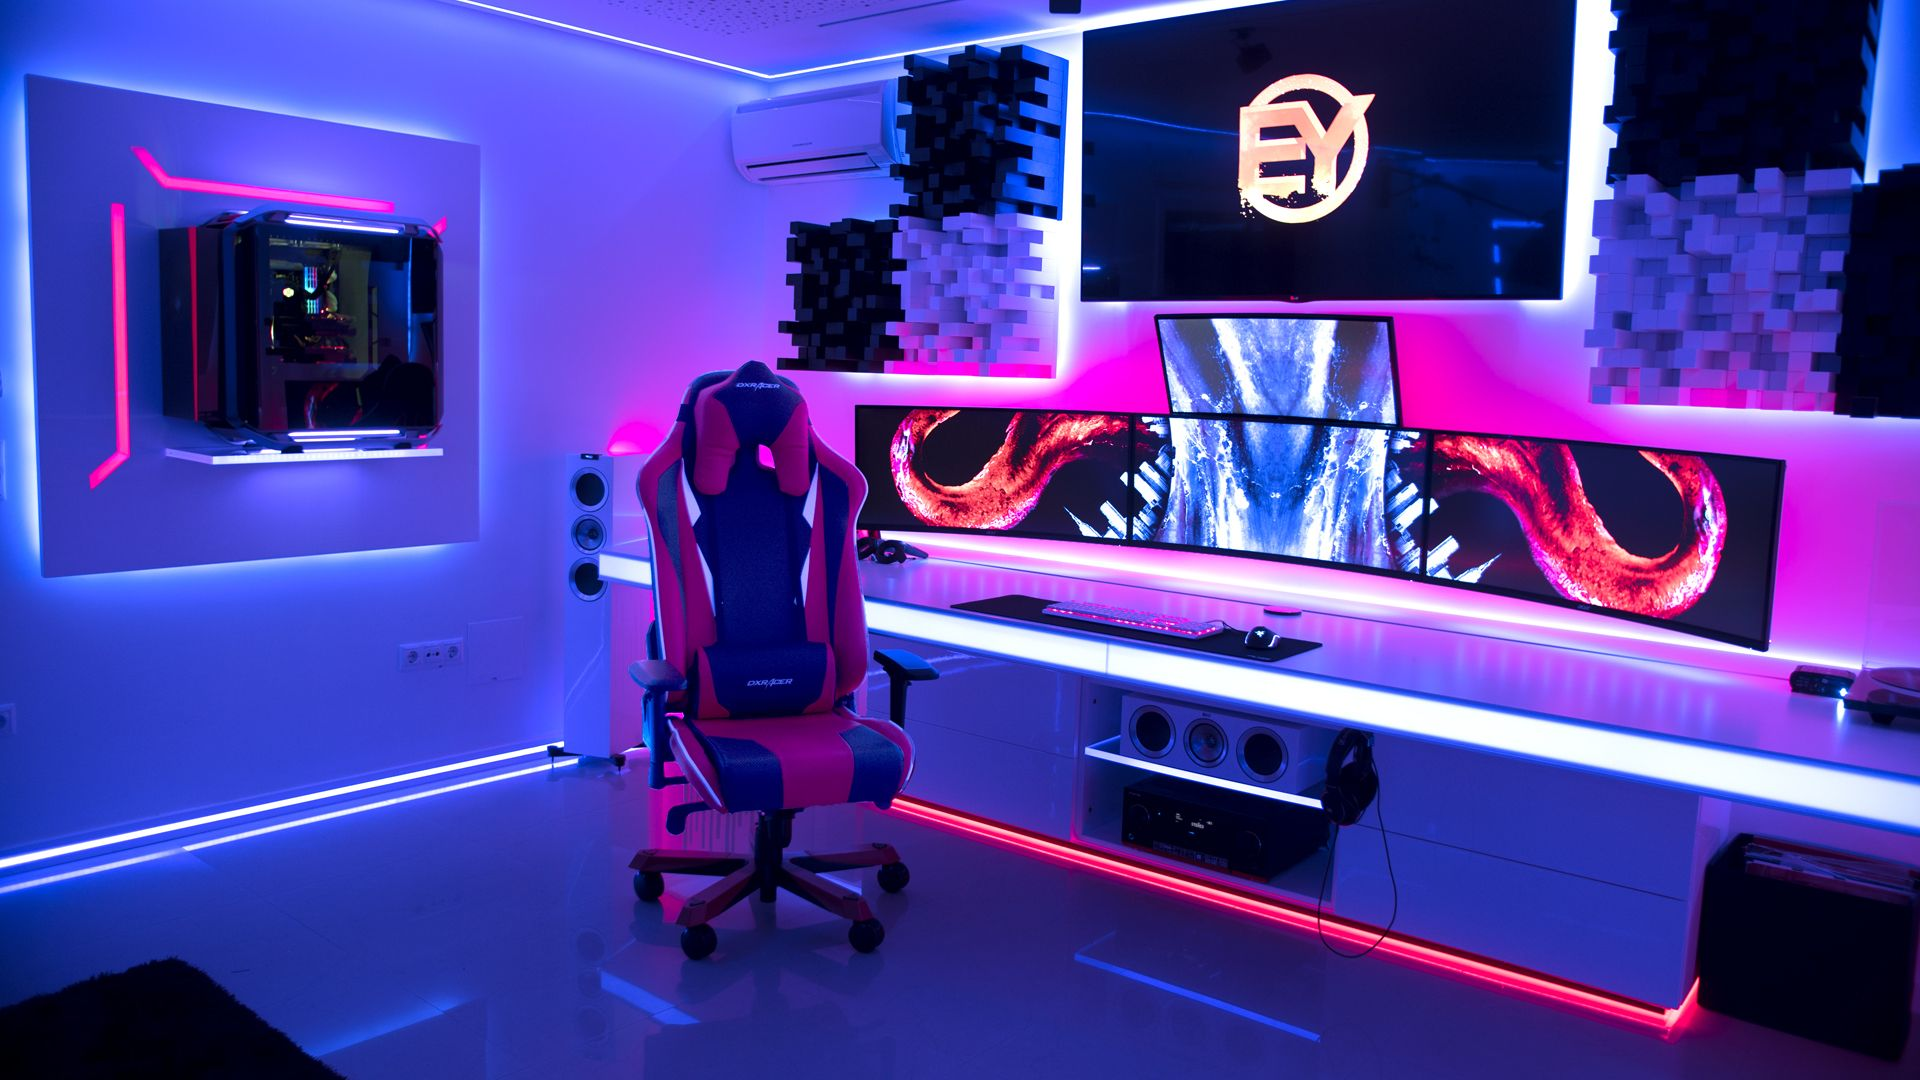 Lights On Deskgame Strong Pinterest Gaming Setup Room Telephone Line Wiring Group Picture Image By Tag Keywordpictures